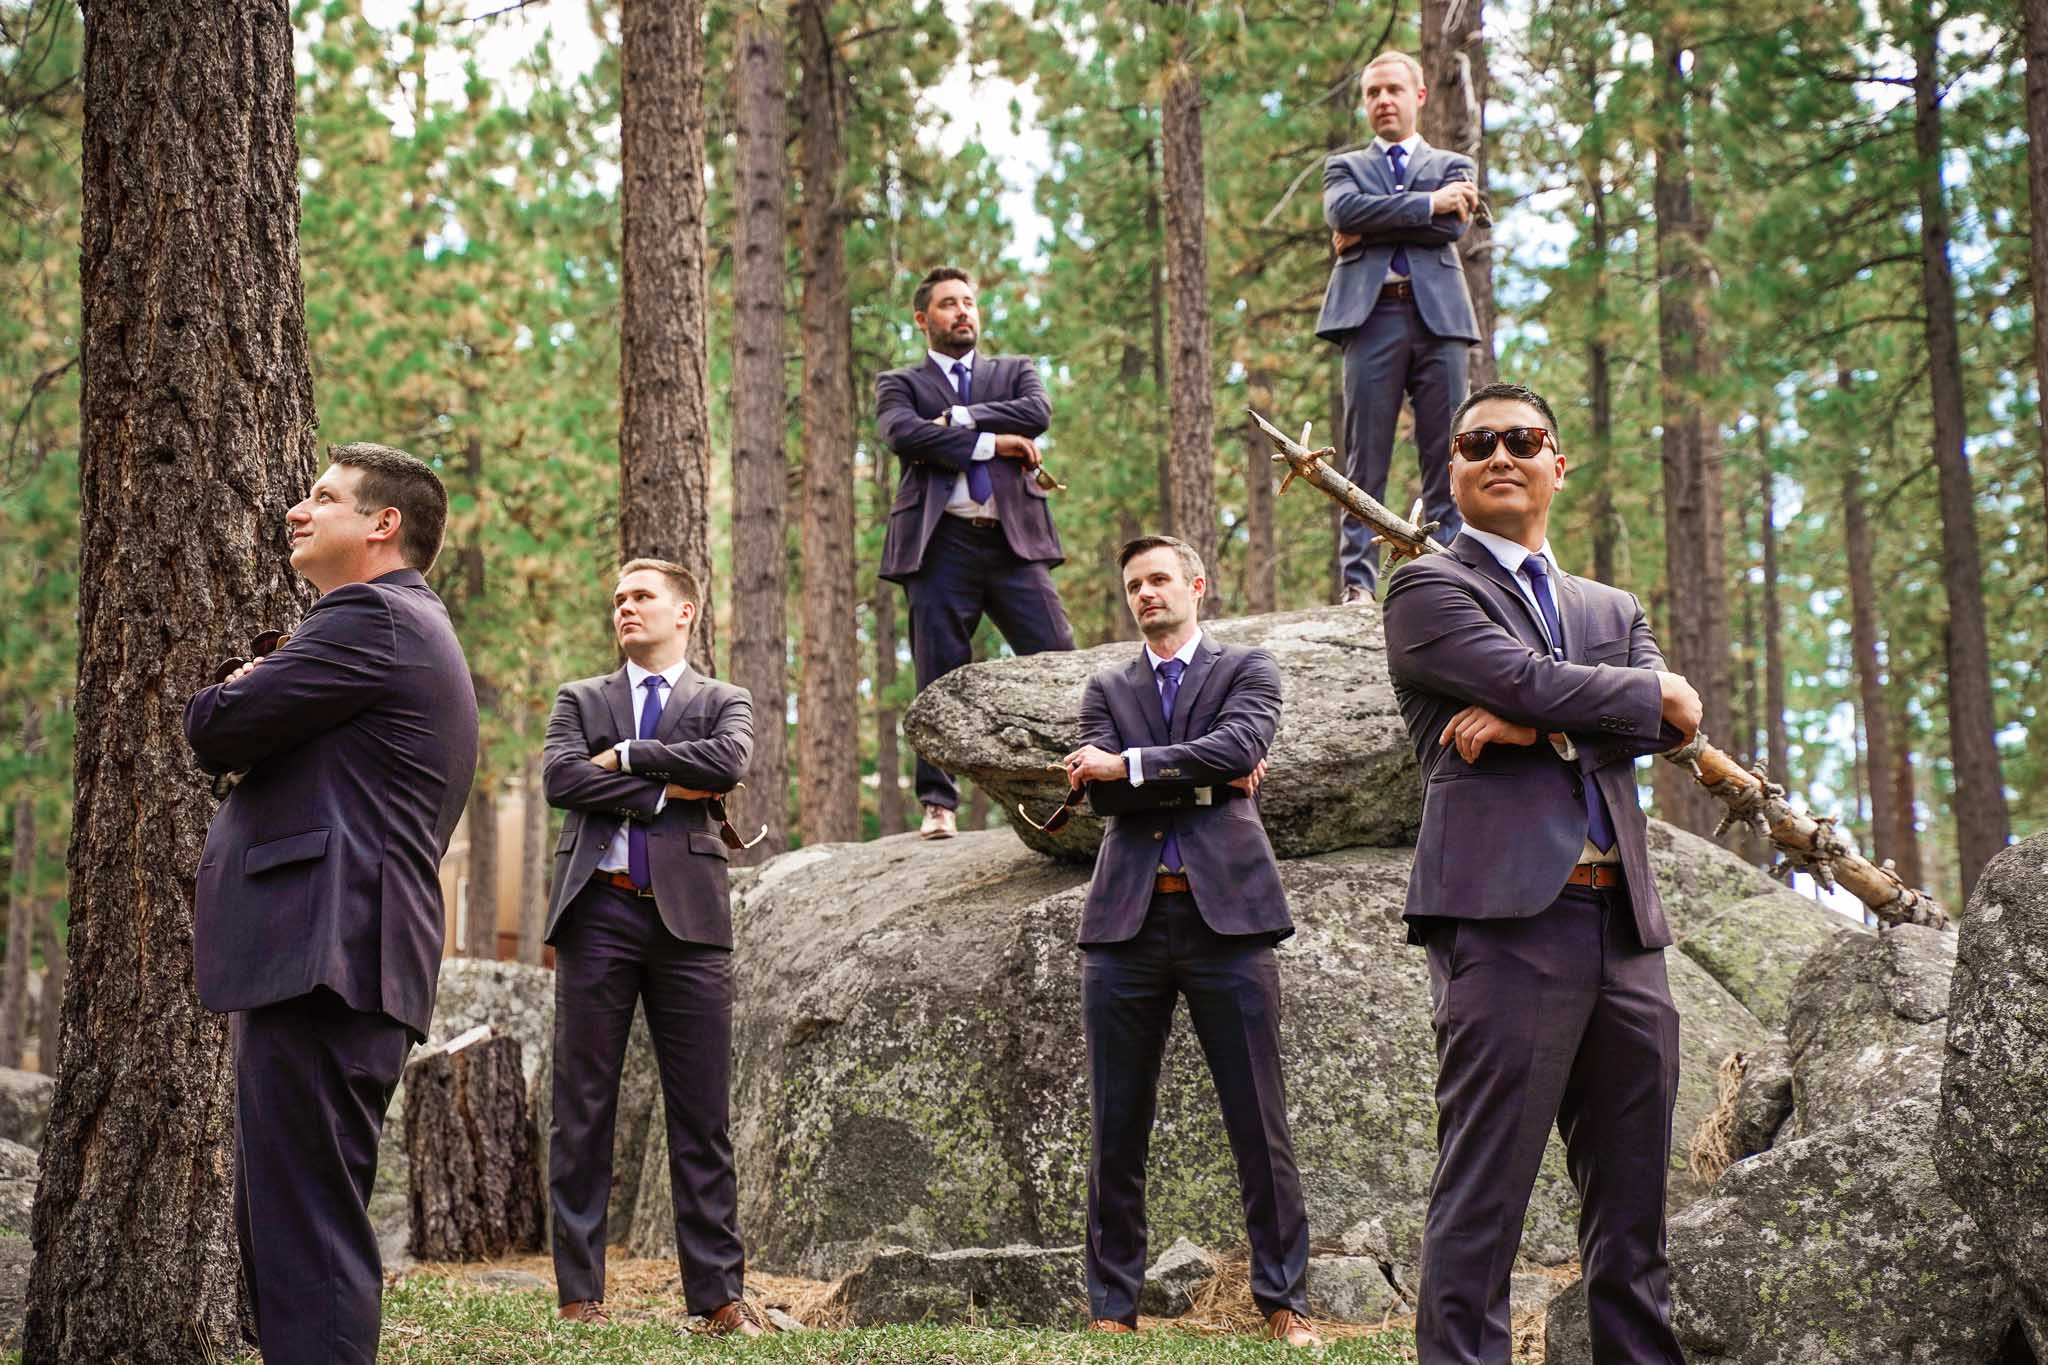 Groom and groomsmen pose in front of a forest of pines in South Lake Tahoe